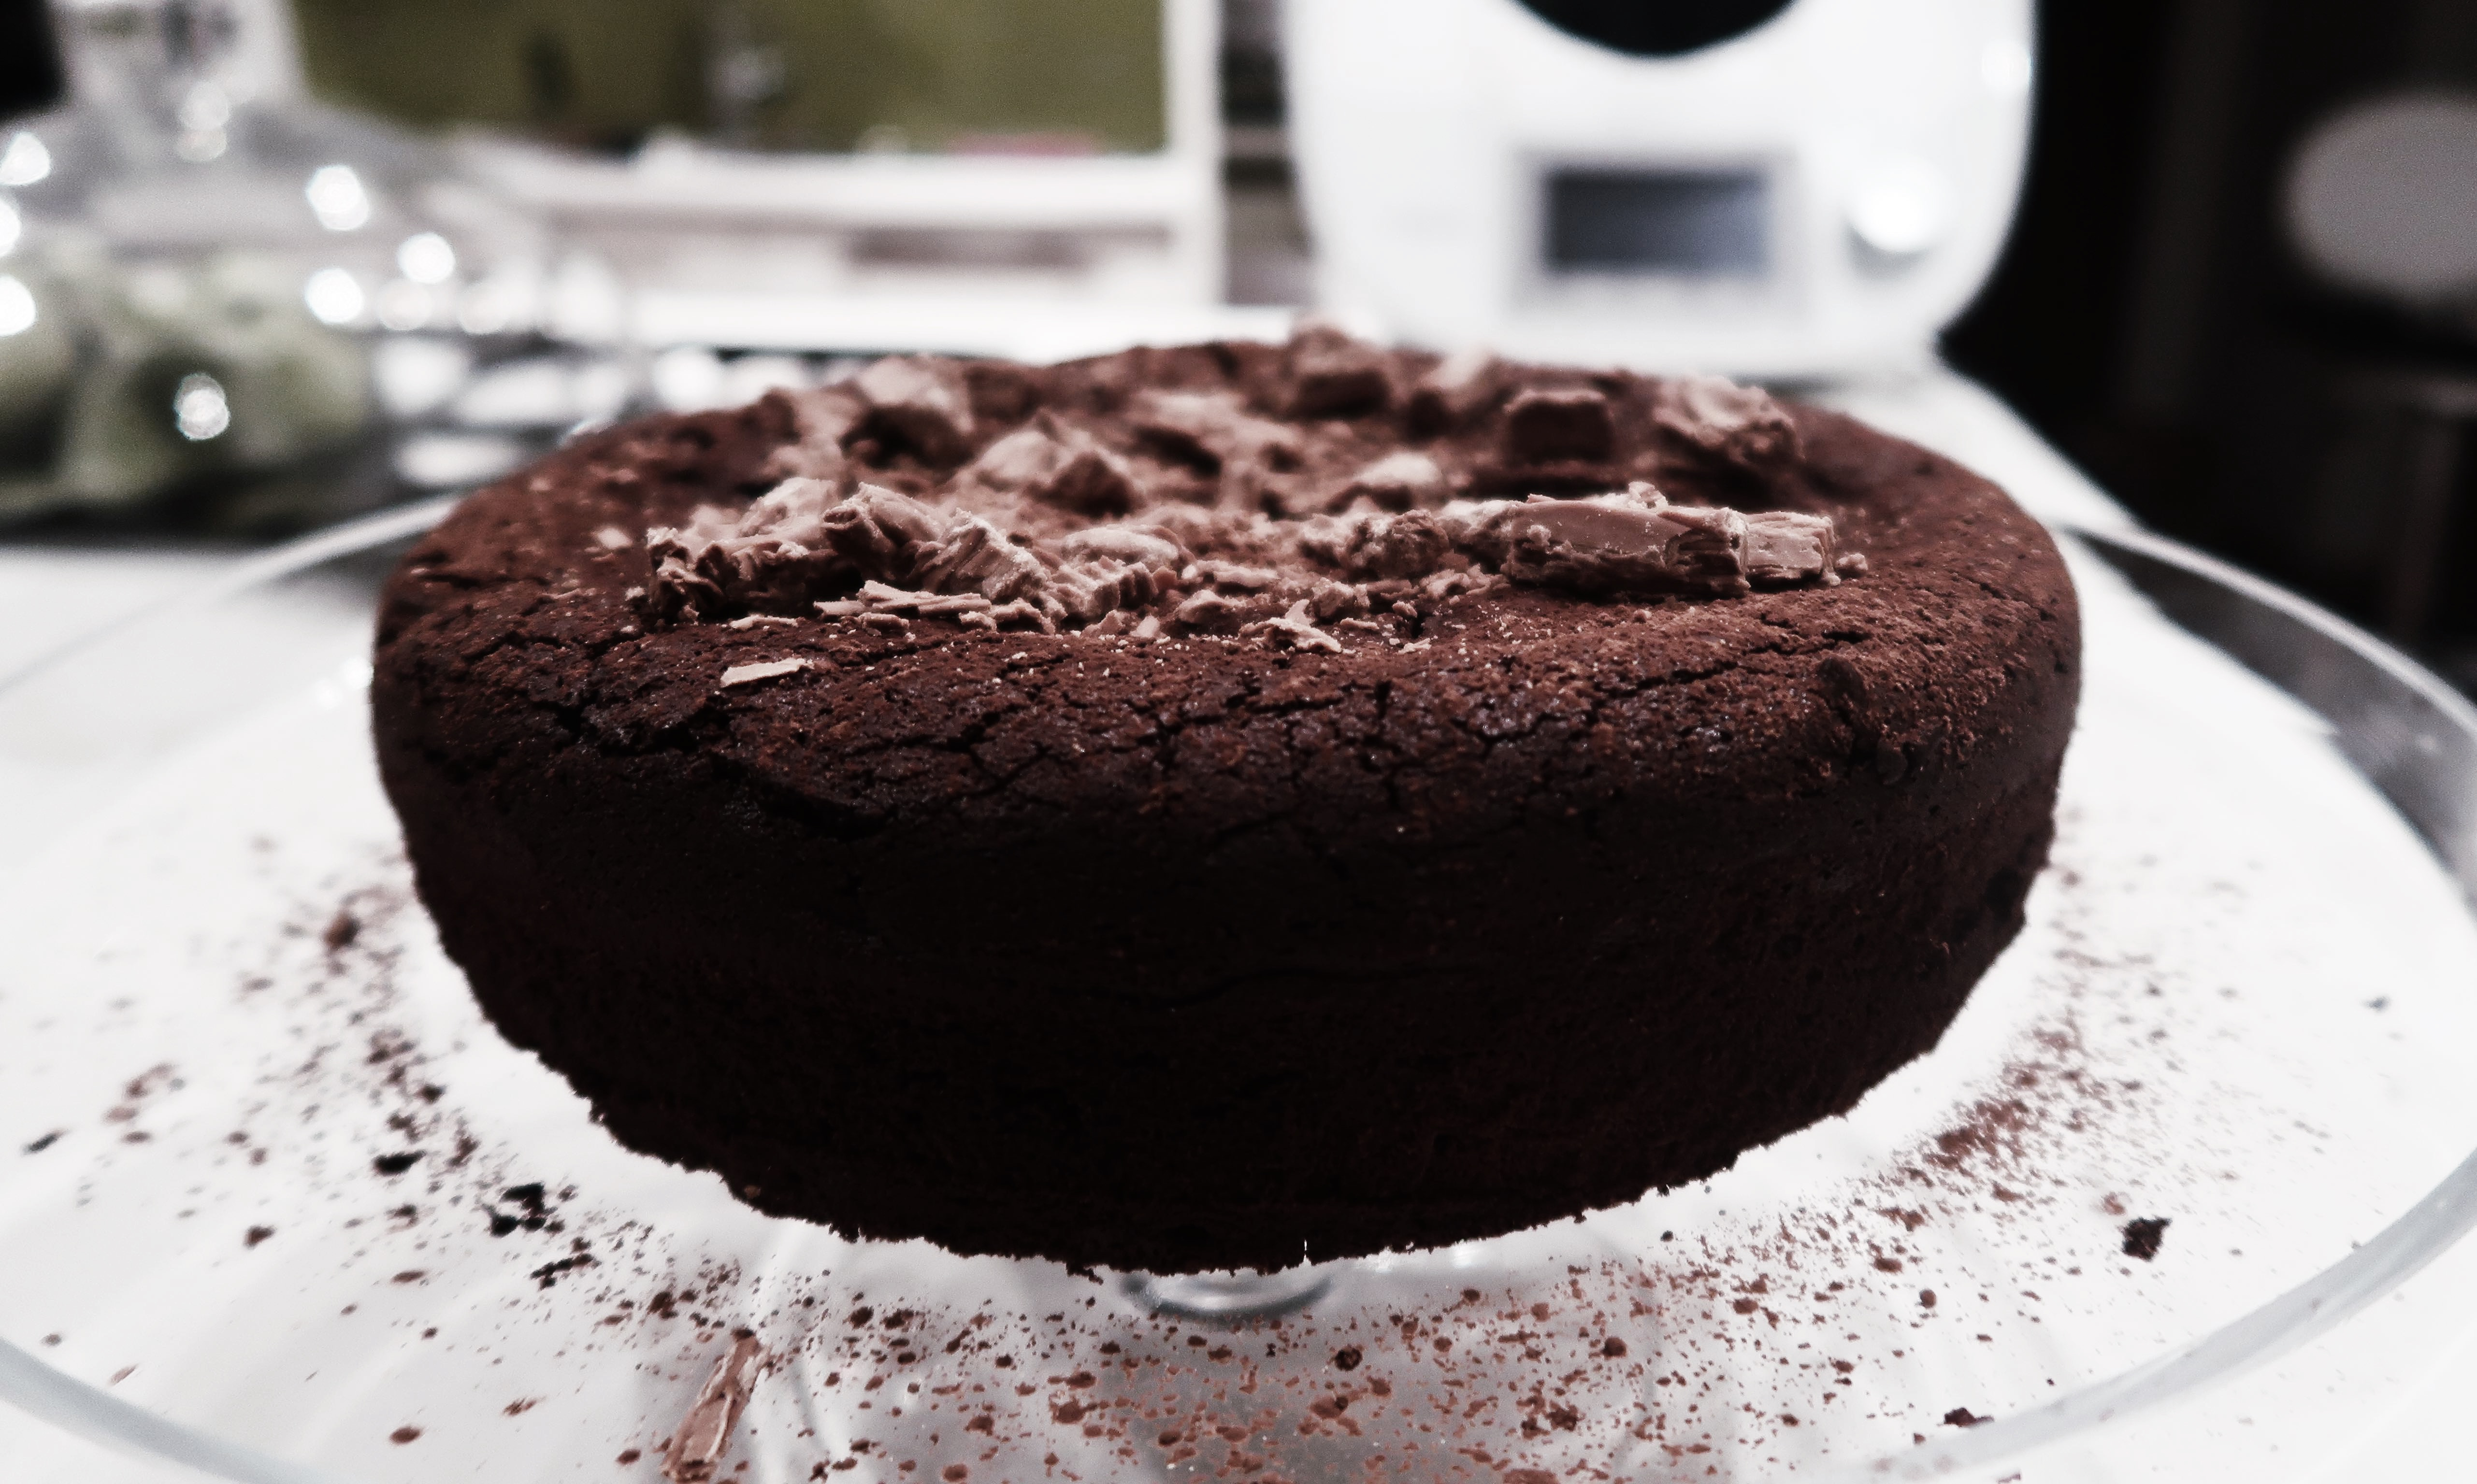 'to die for' chocolate cake.